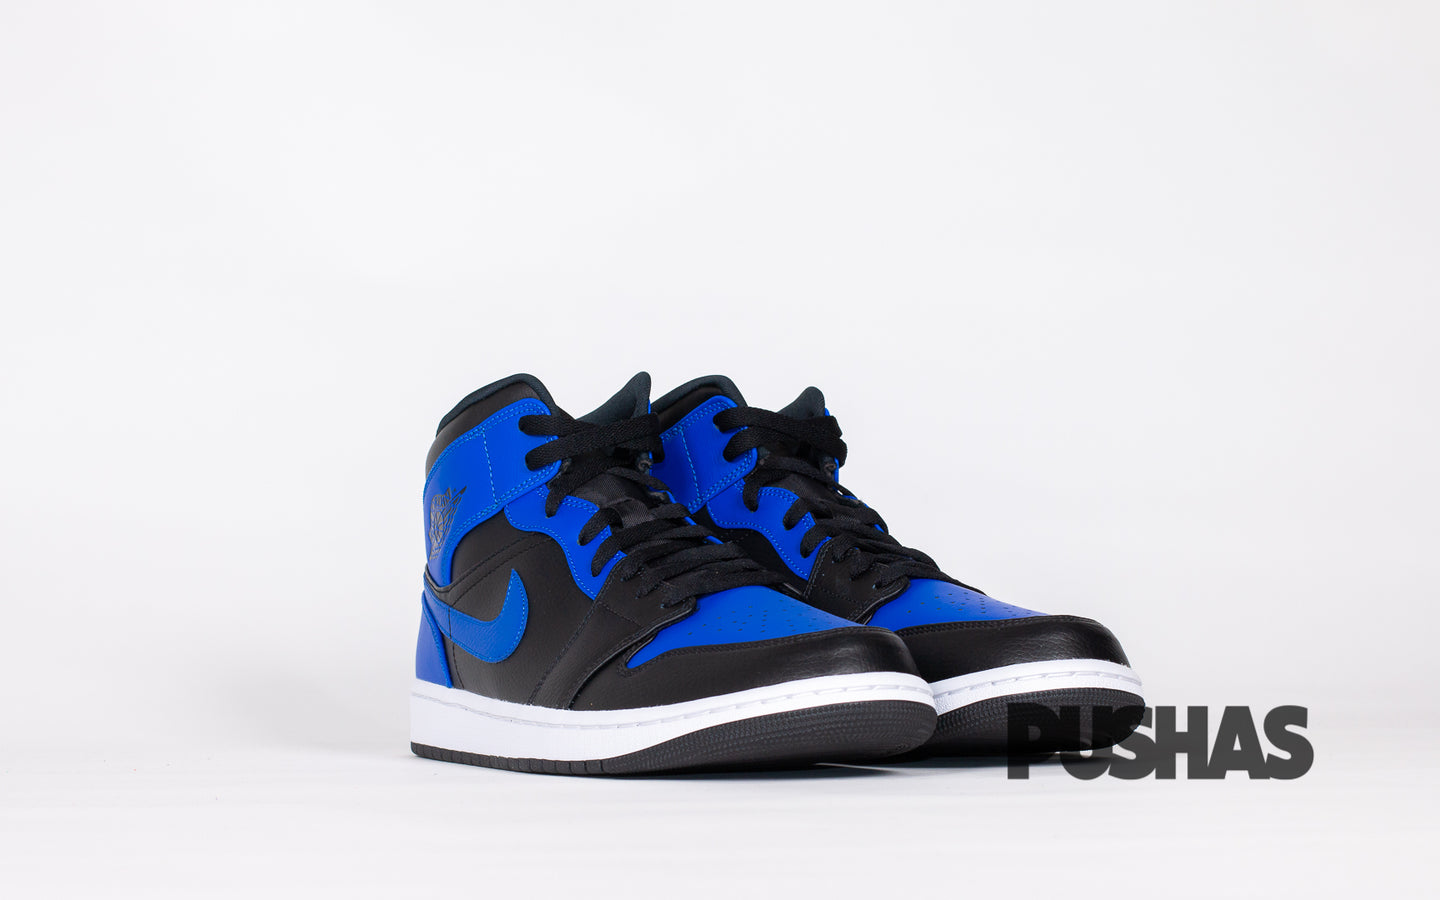 pushas-nike-Air-Jordan-1-Mid-Hyper-Royal